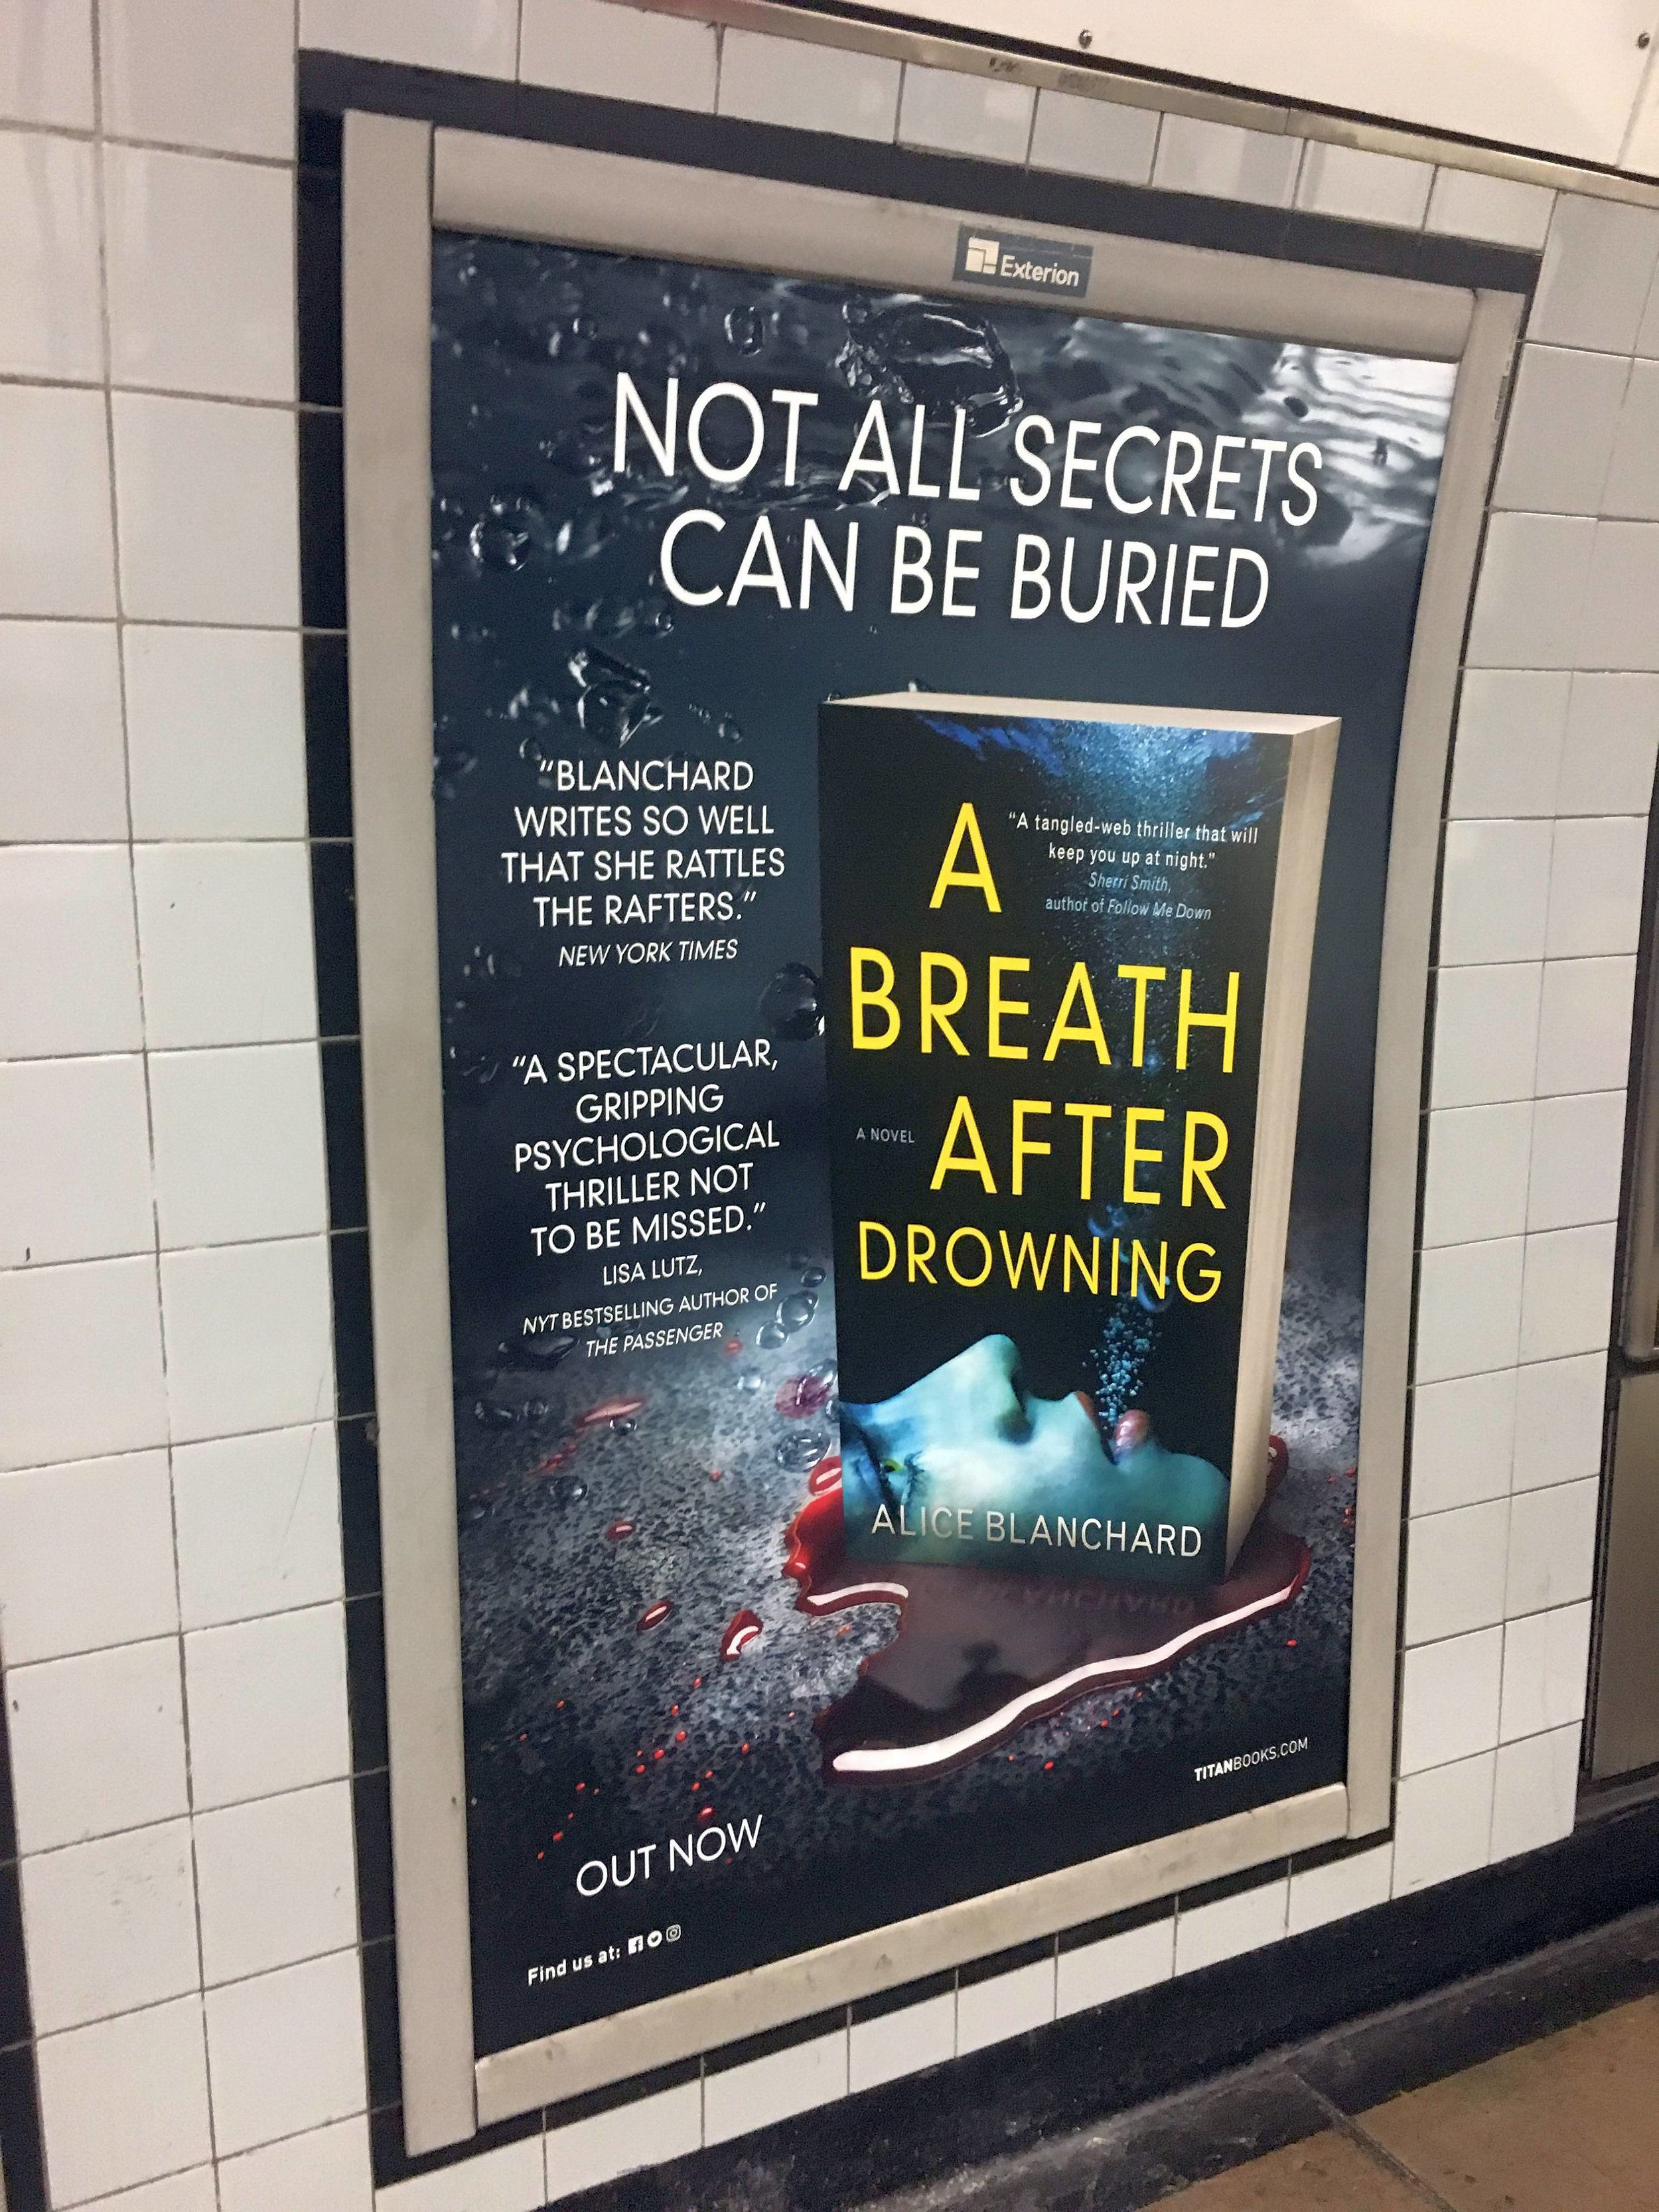 BREATH_LONDON_TUBE_POSTER.jpg